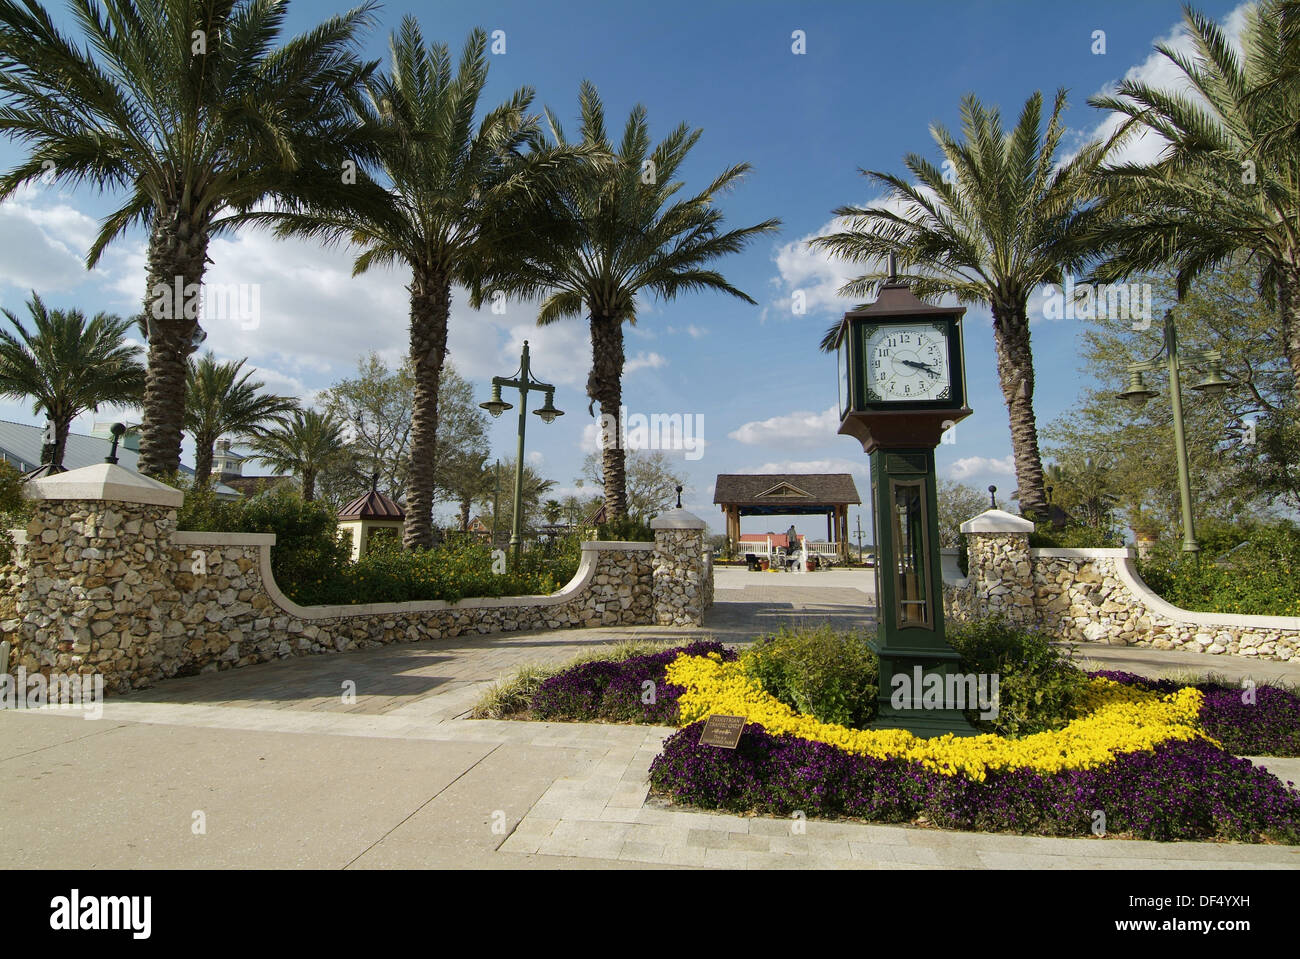 The Villages is a retirement community near Orlando and